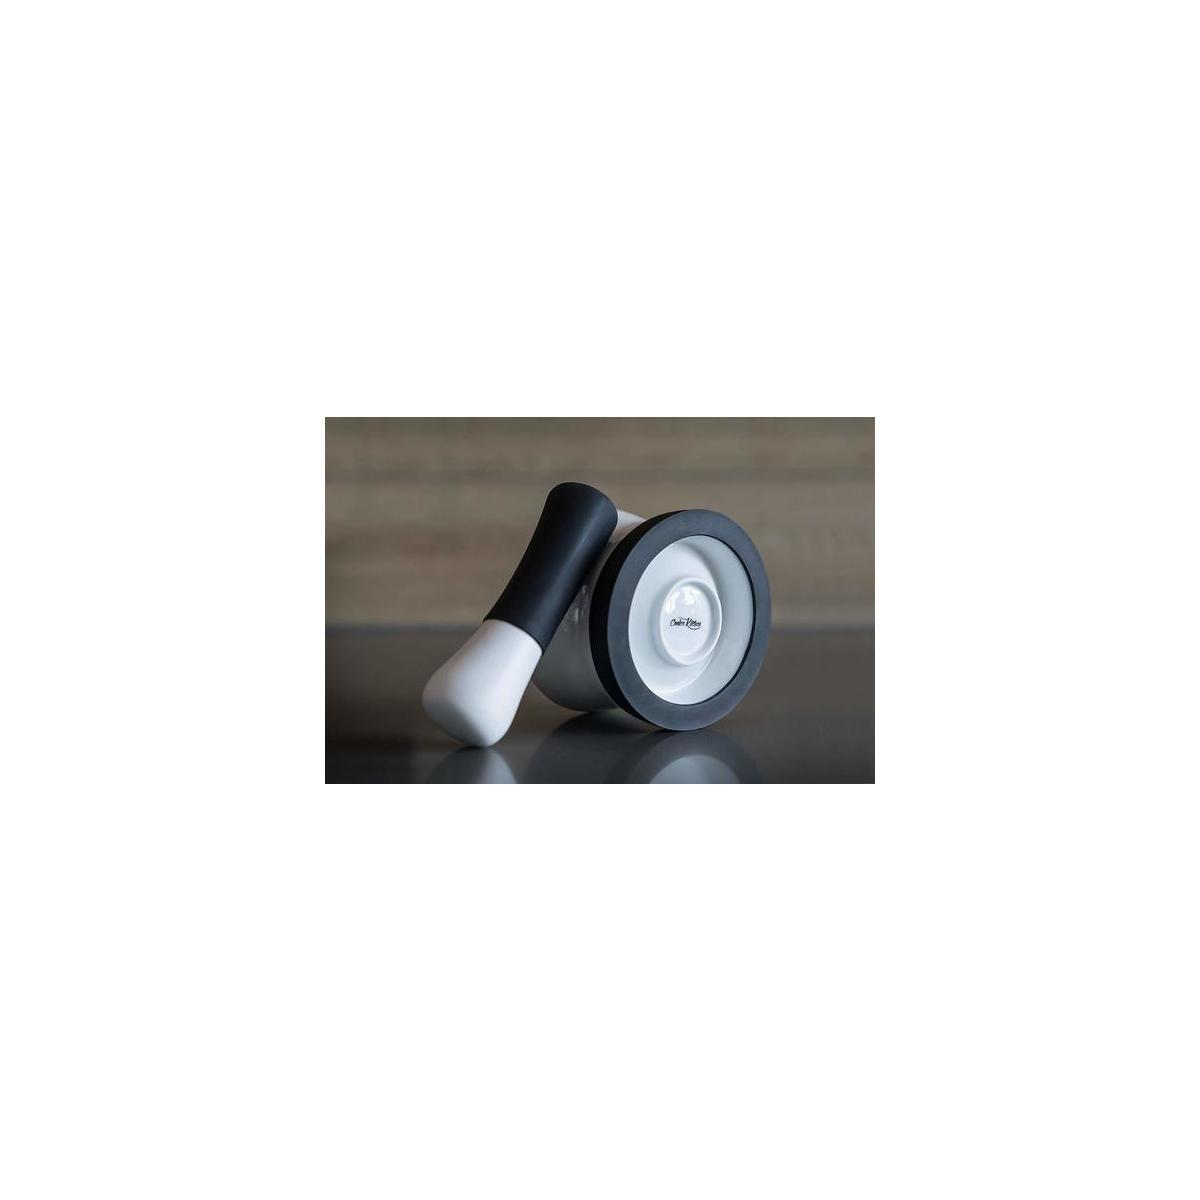 EZ-Grip Silicone & Porcelain Mortar and Pestle With Non-Slip Detachable Silicone Base - NEW DESIGN - Dishwasher Safe by Cooler Kitchen